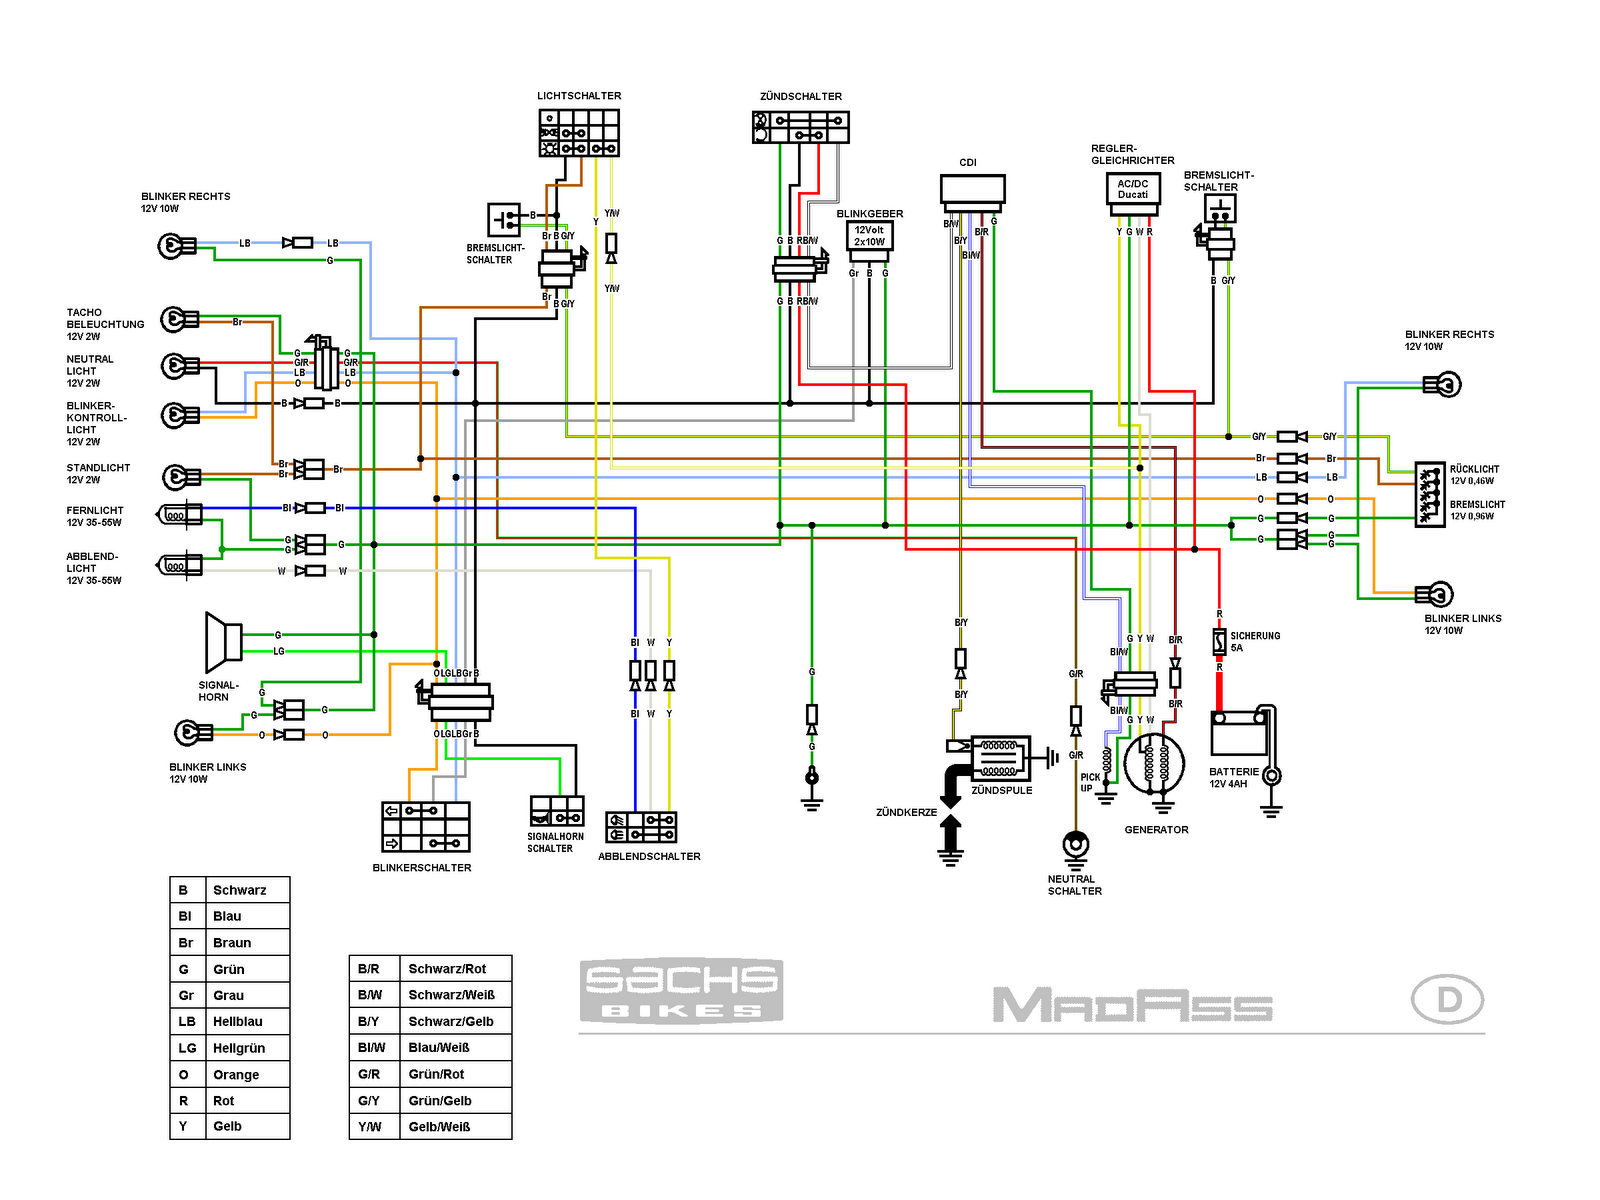 cat 3512b wiring diagram wiring diagram for you cat 3512 manual cat 3512b wire diagram [ 1600 x 1200 Pixel ]